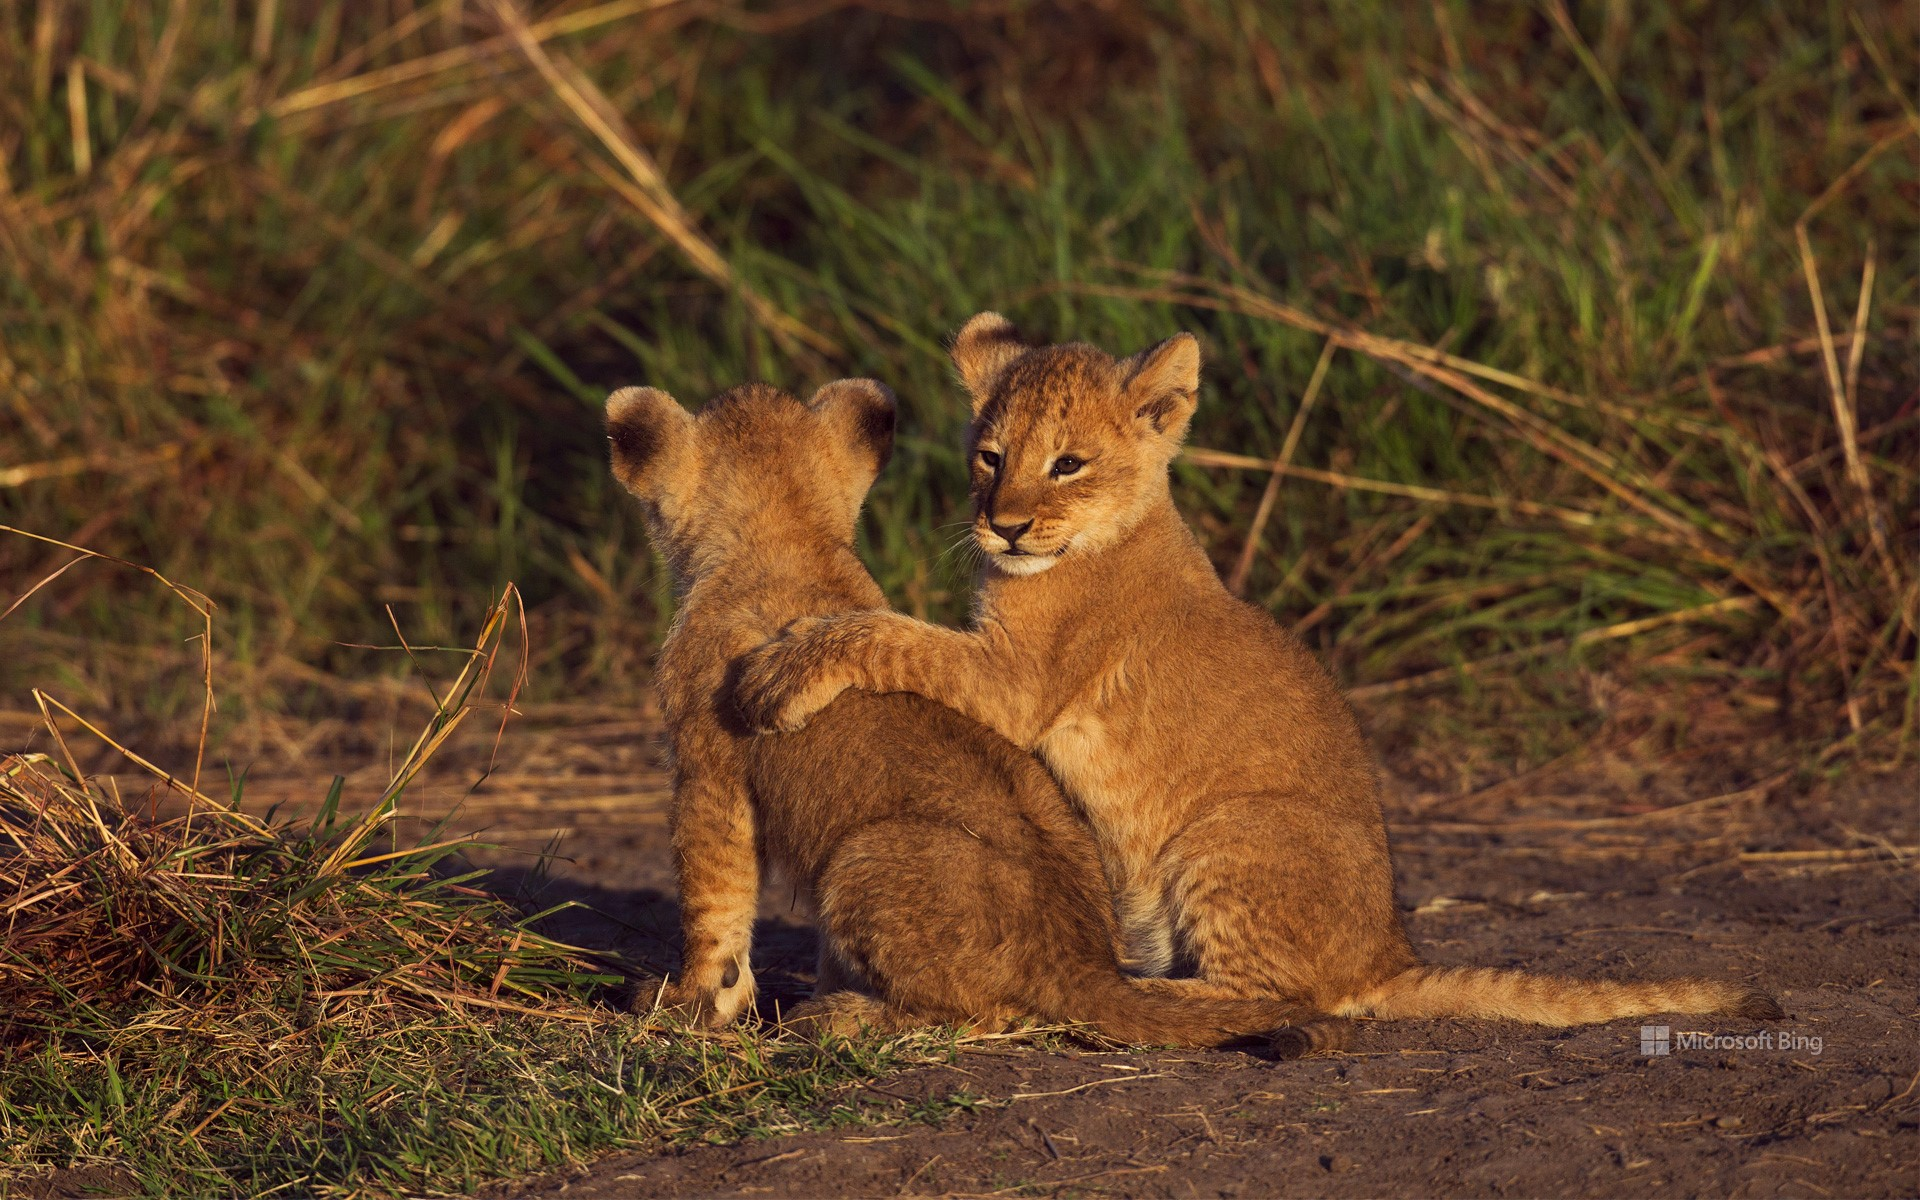 Two lion cubs in the Masai Mara National Reserve in Kenya